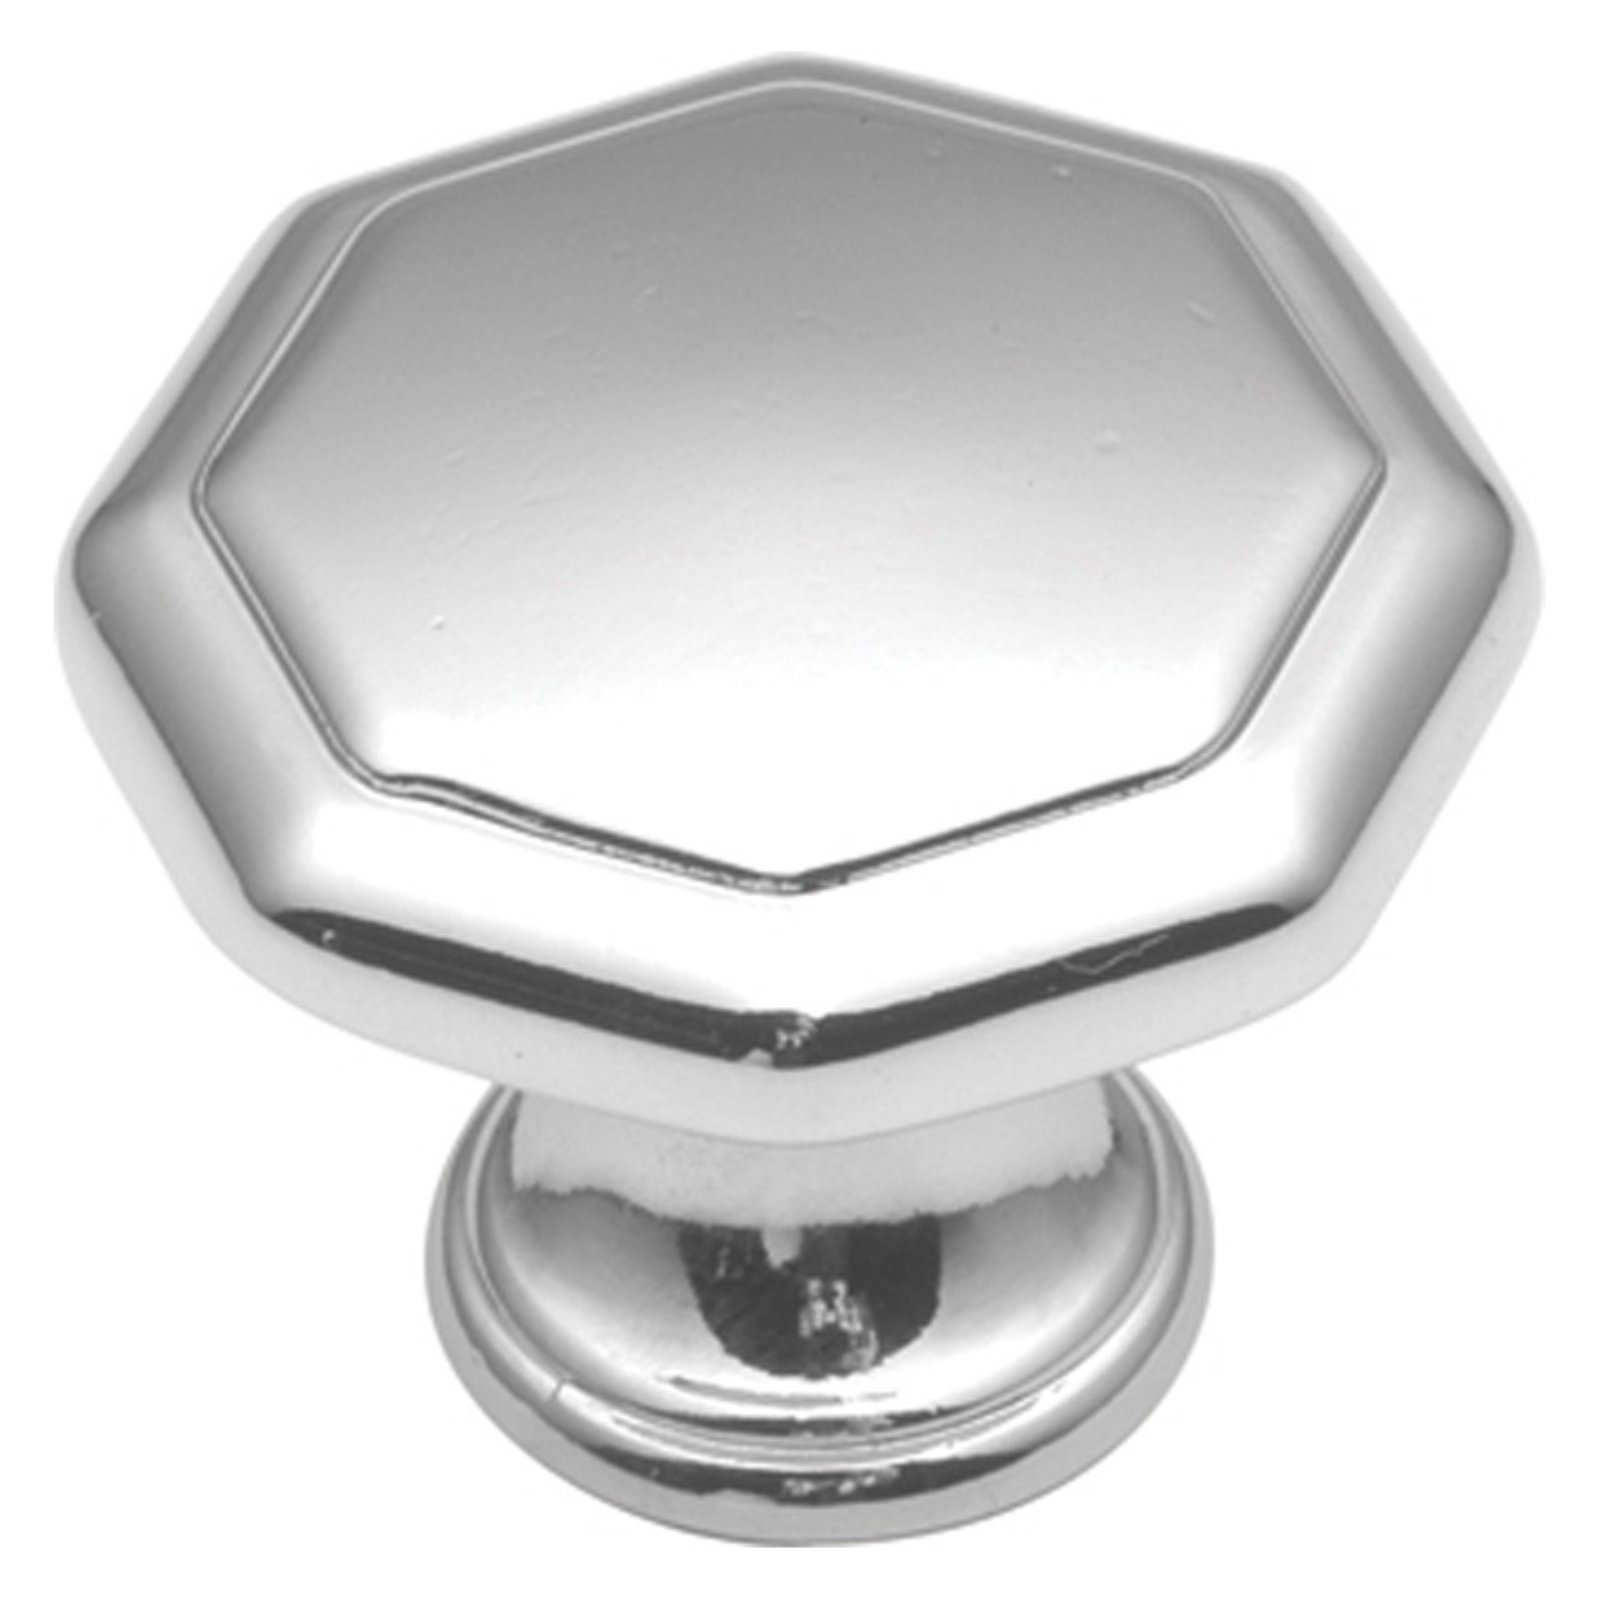 Hickory Hardware Conquest Octagonal Knob